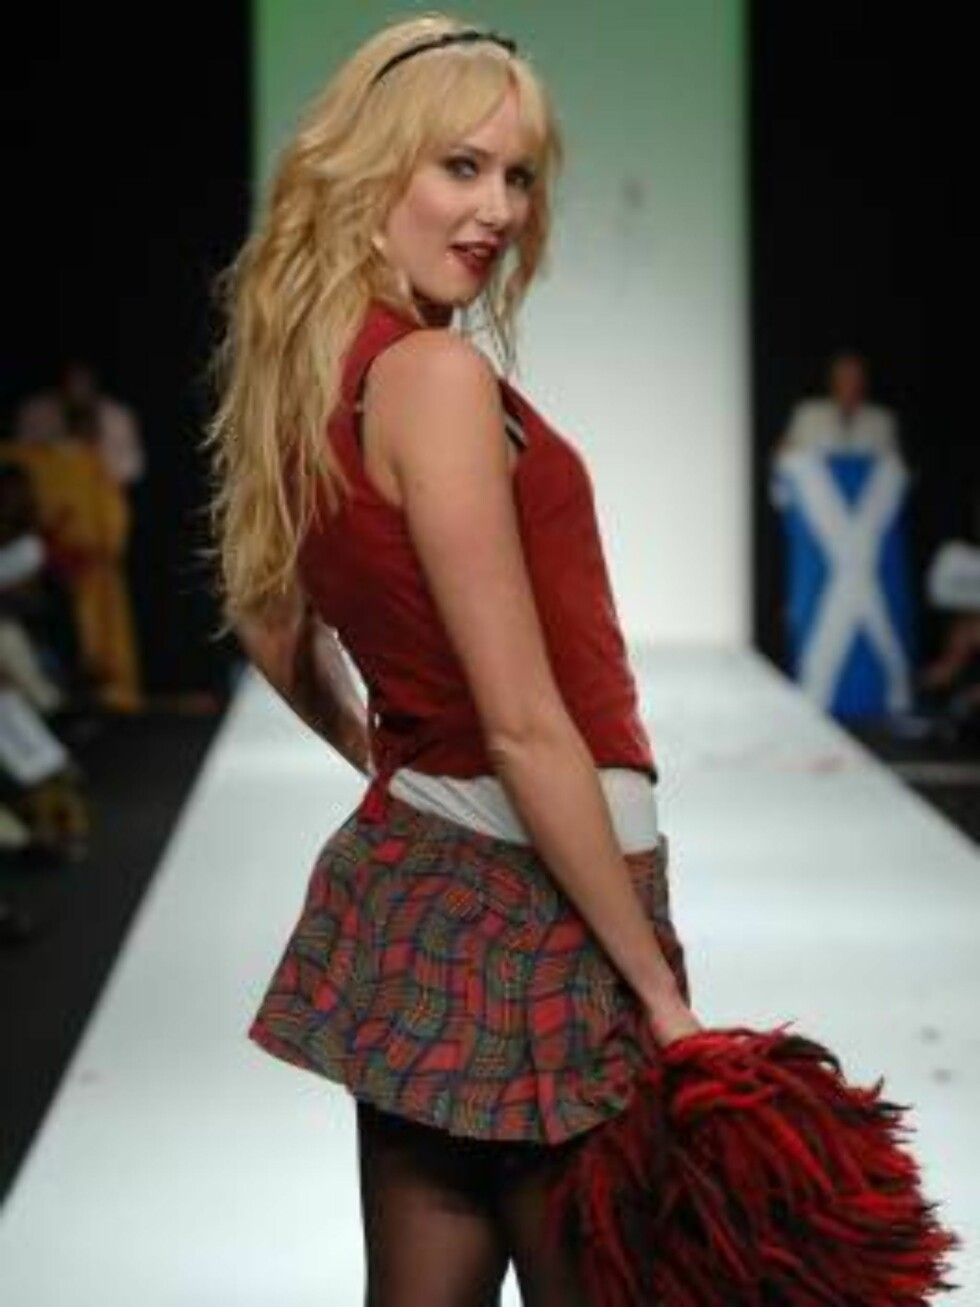 LOS ANGELES 2006-10-14  Kimberly Stewart attends the 2006 Dressed to  Kilt, an evening of Scottish fashion to kick-off the Mercedes-Benz fashion week. Los Angeles, October 14, 2006. (Pictured: Kimberly Stewart).   Photo: Lionel Hahn/AbacaUsa  Code: 4001/A Foto: Stella Pictures